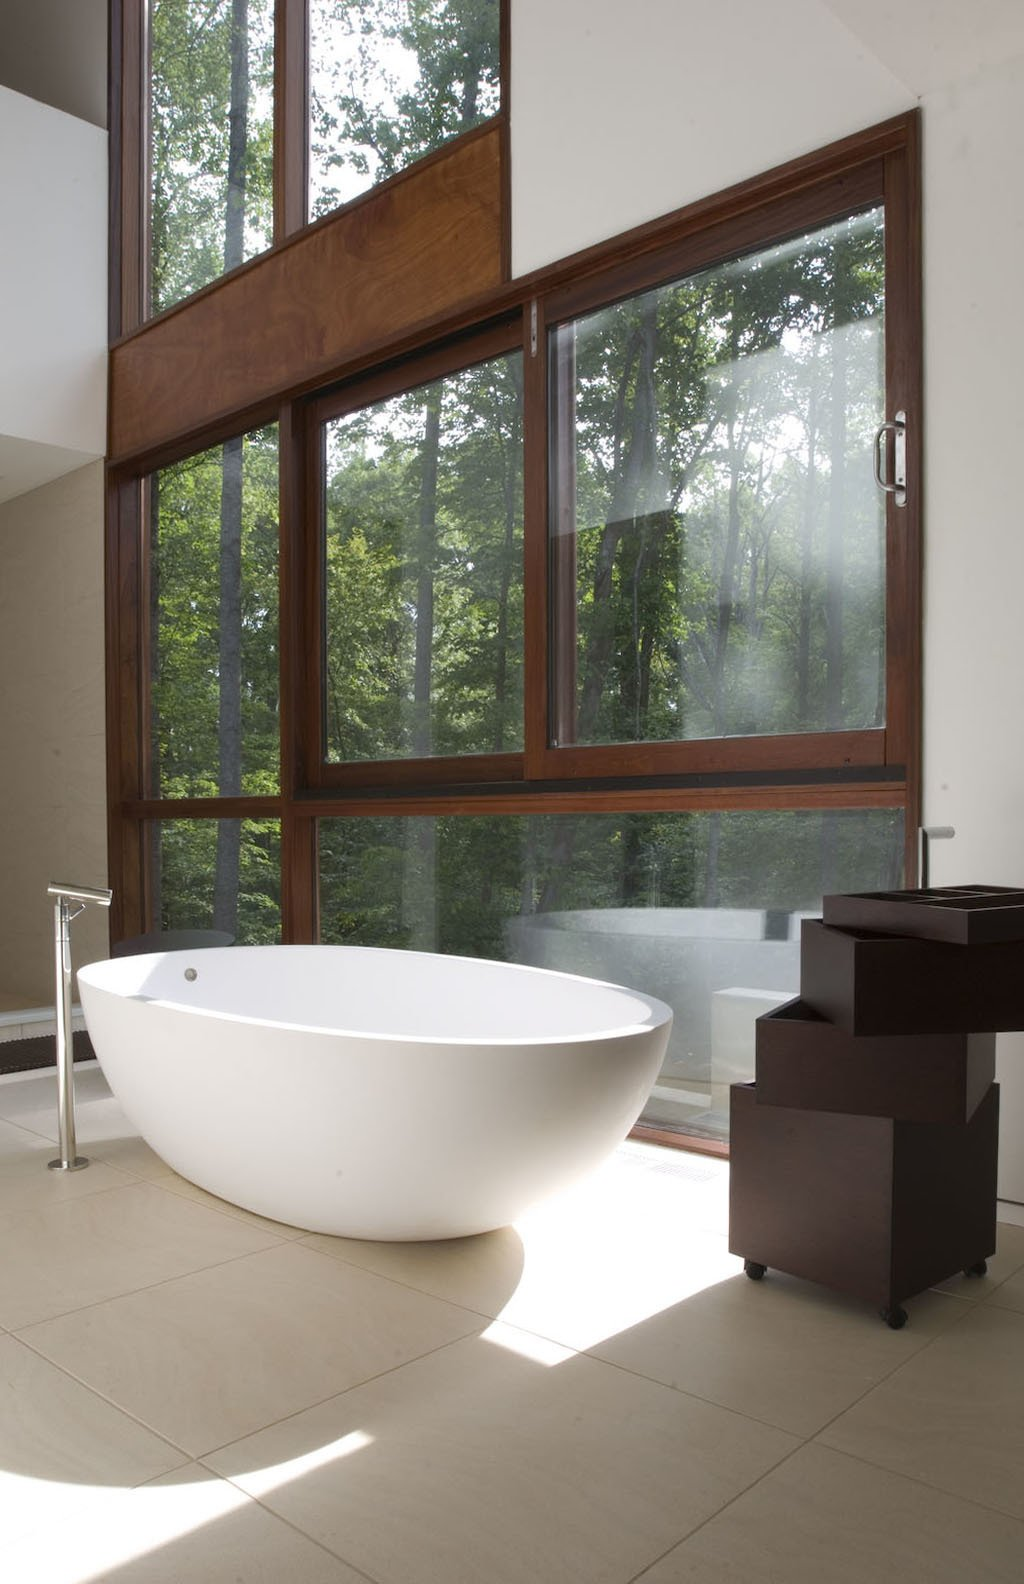 Bath Room and Freestanding Tub  Photo 27 of 40 in 40 Modern Bathtubs That Soak In the View from Bathroom